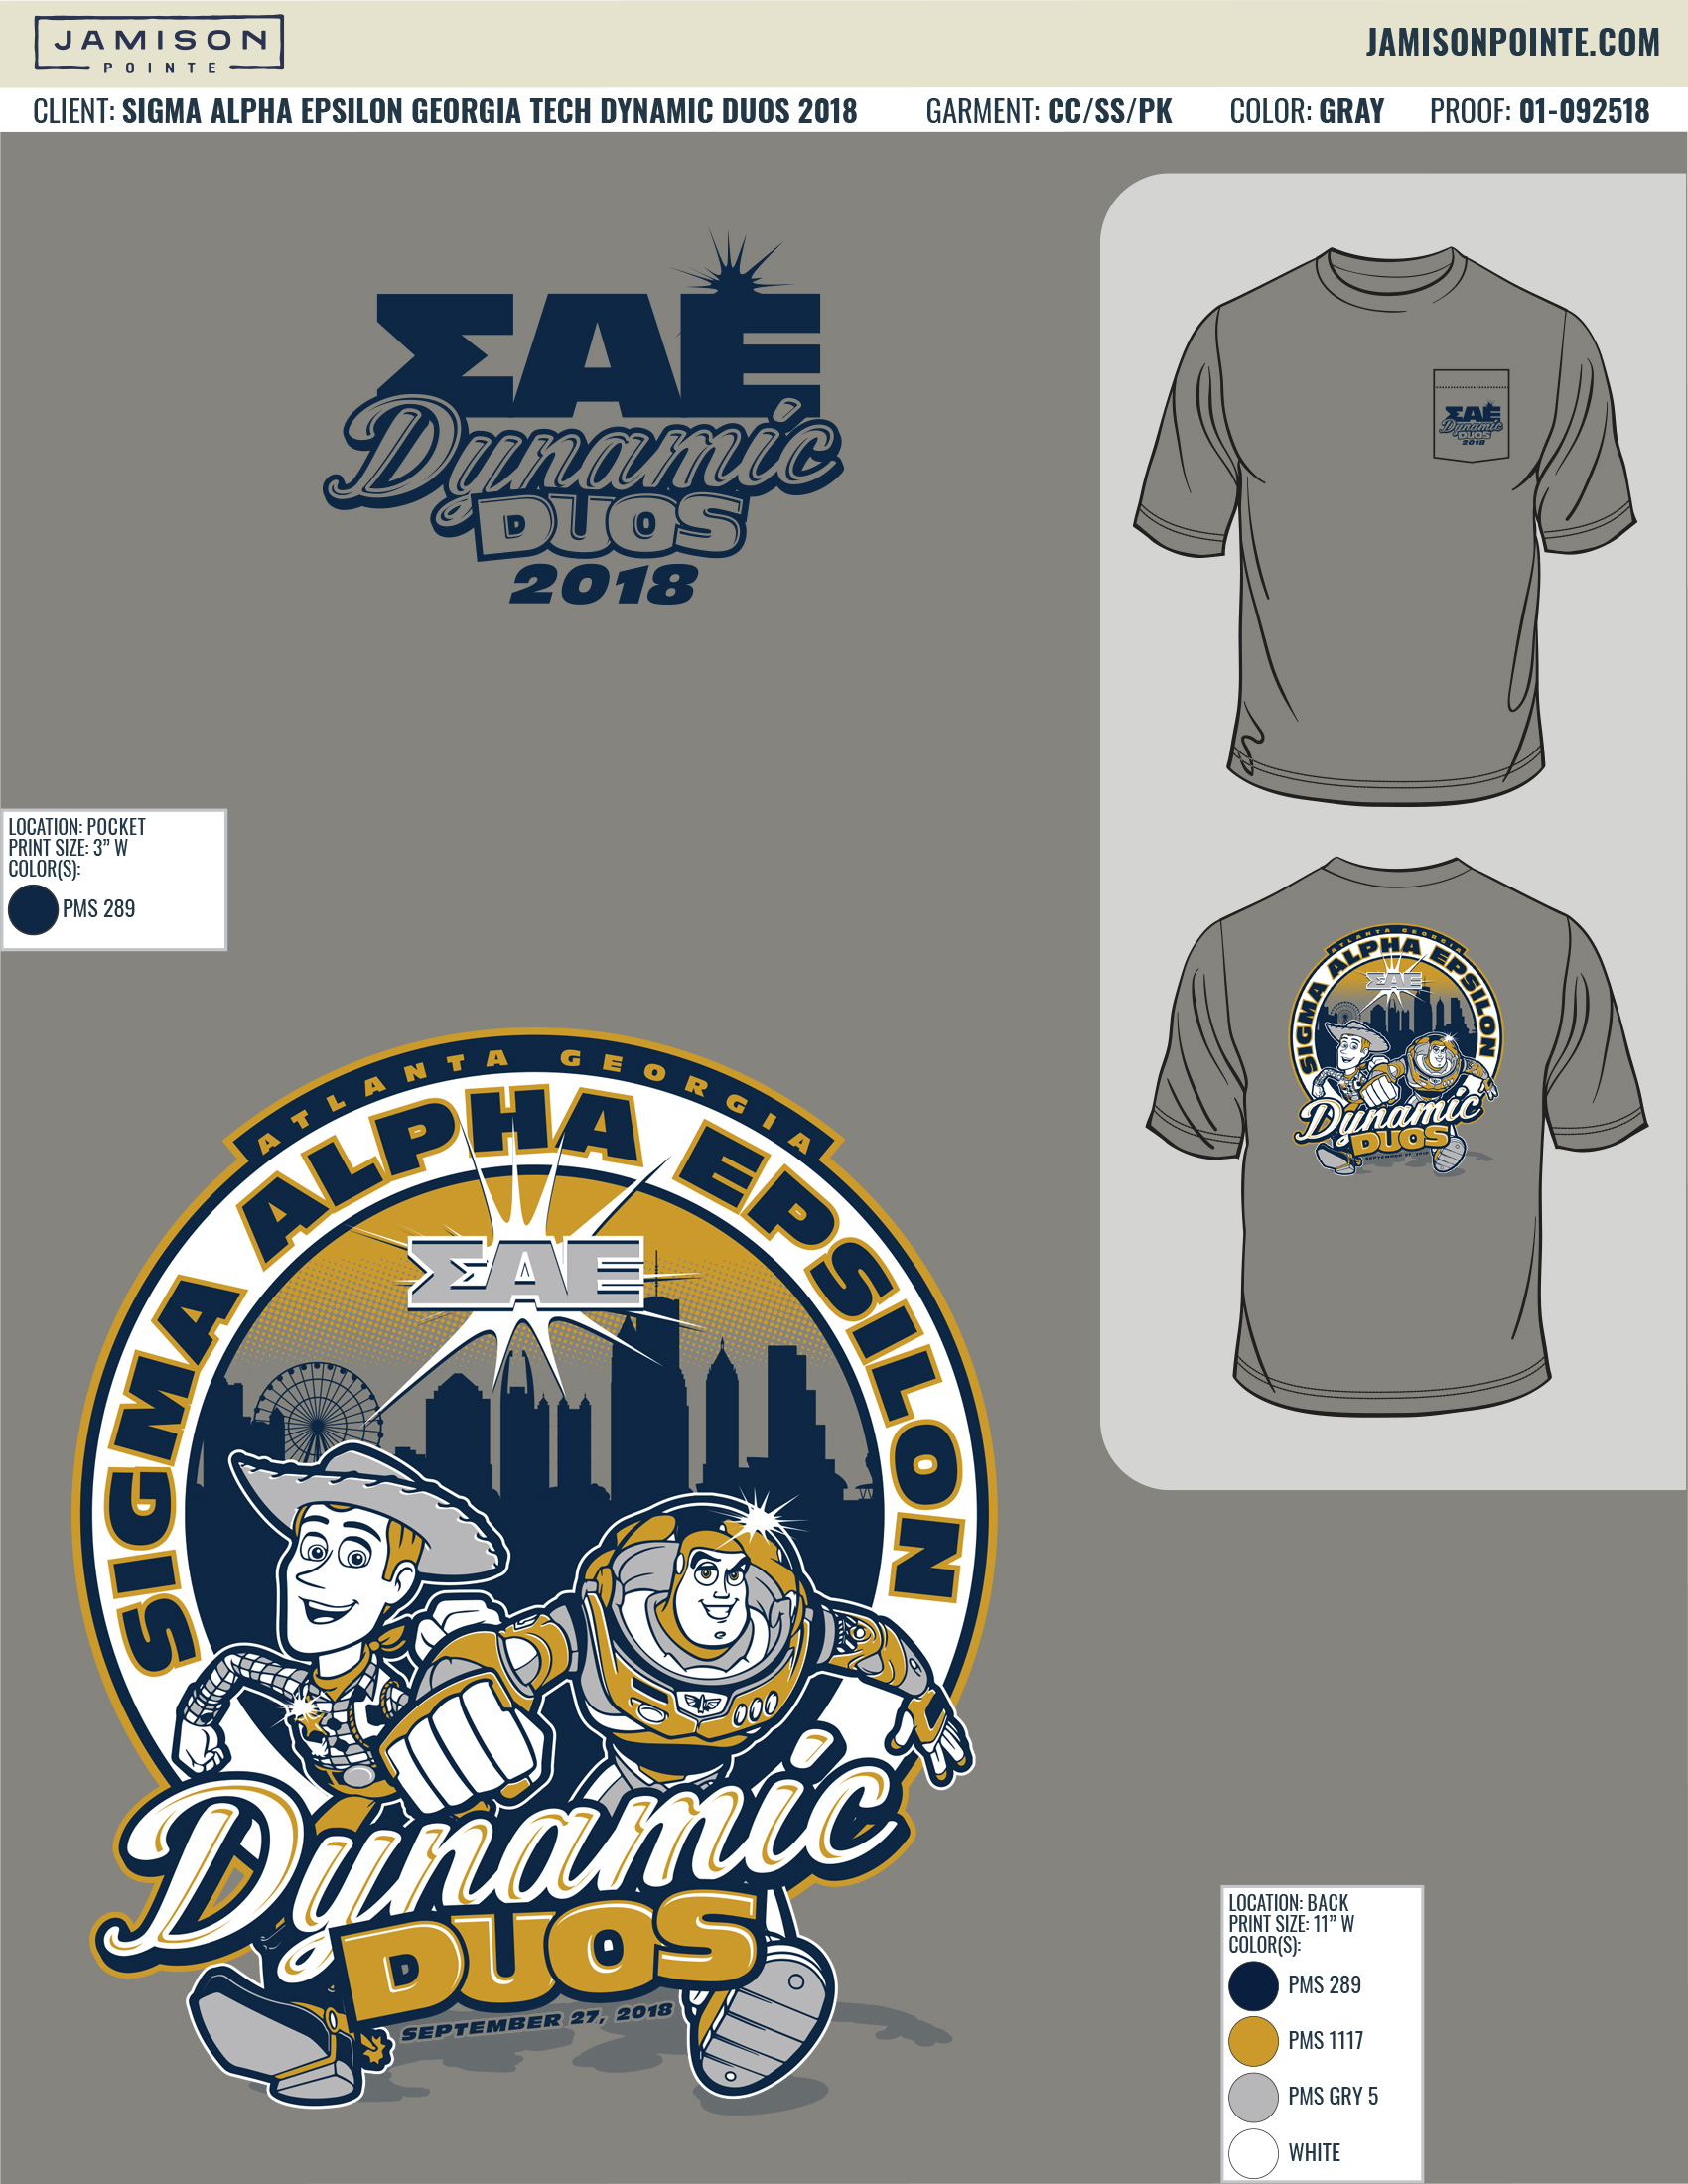 01-092518 Sigma Alpha Epsilon Georgia Tech Dynamic Duos 2018.jpg